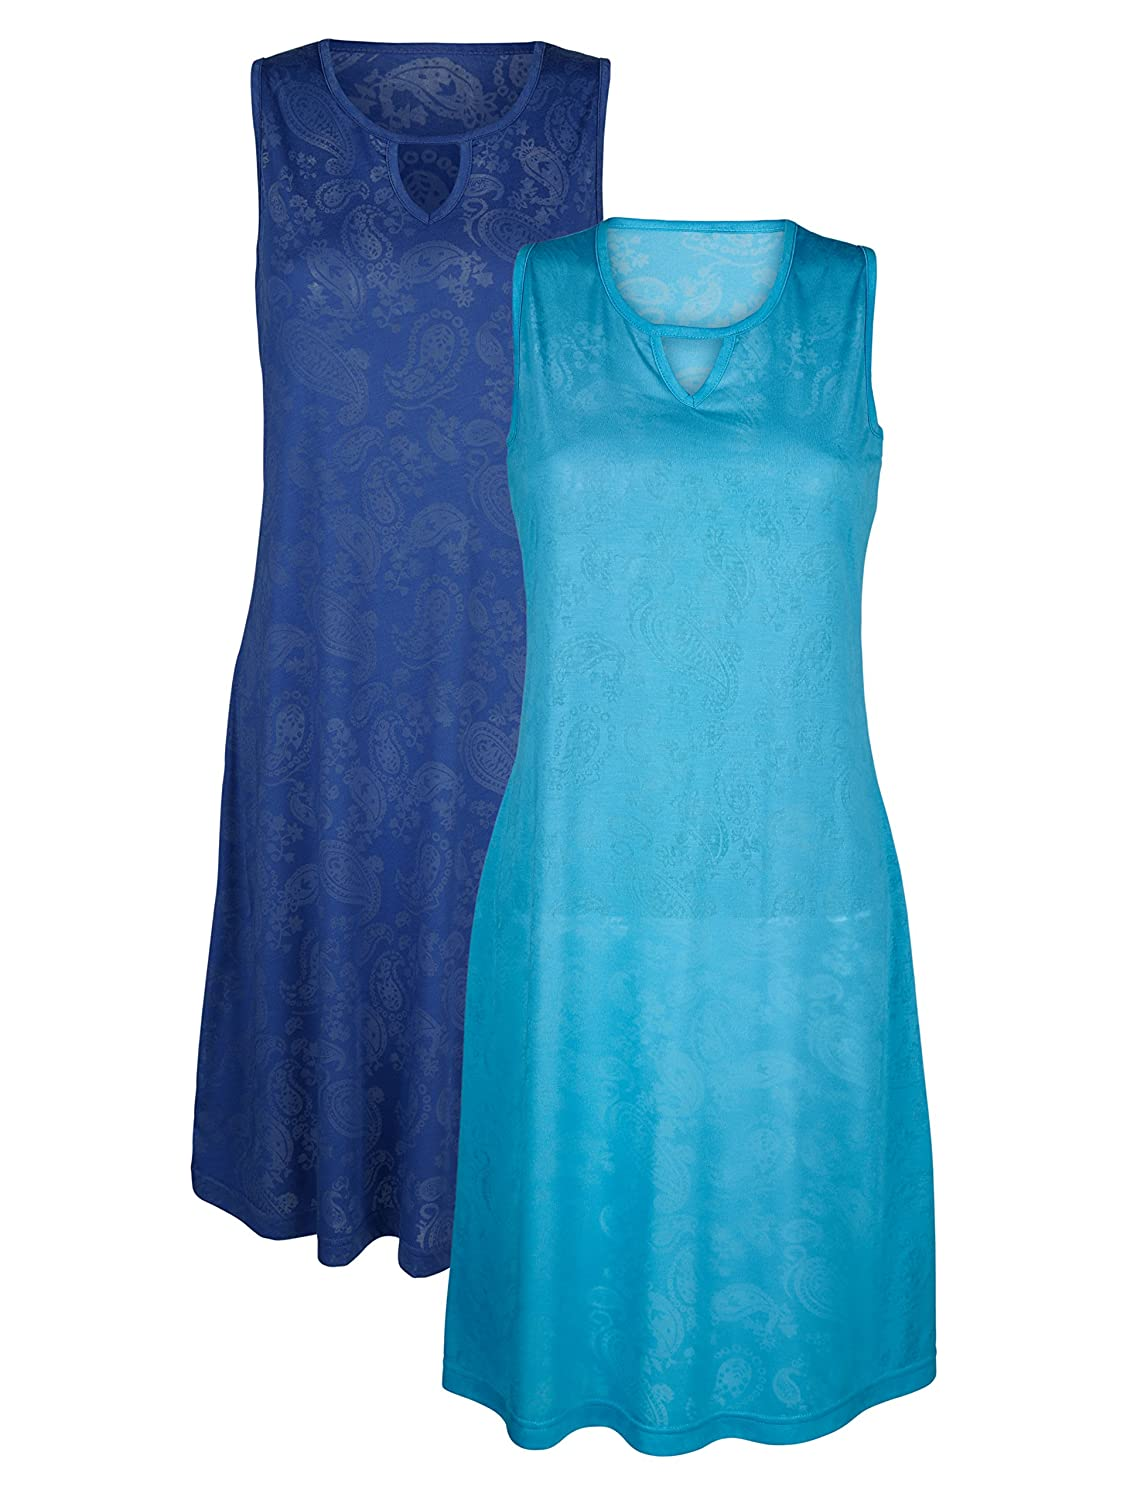 Damen Strandkleid Single Jersey in Ausbrenner-Optik by Maritim